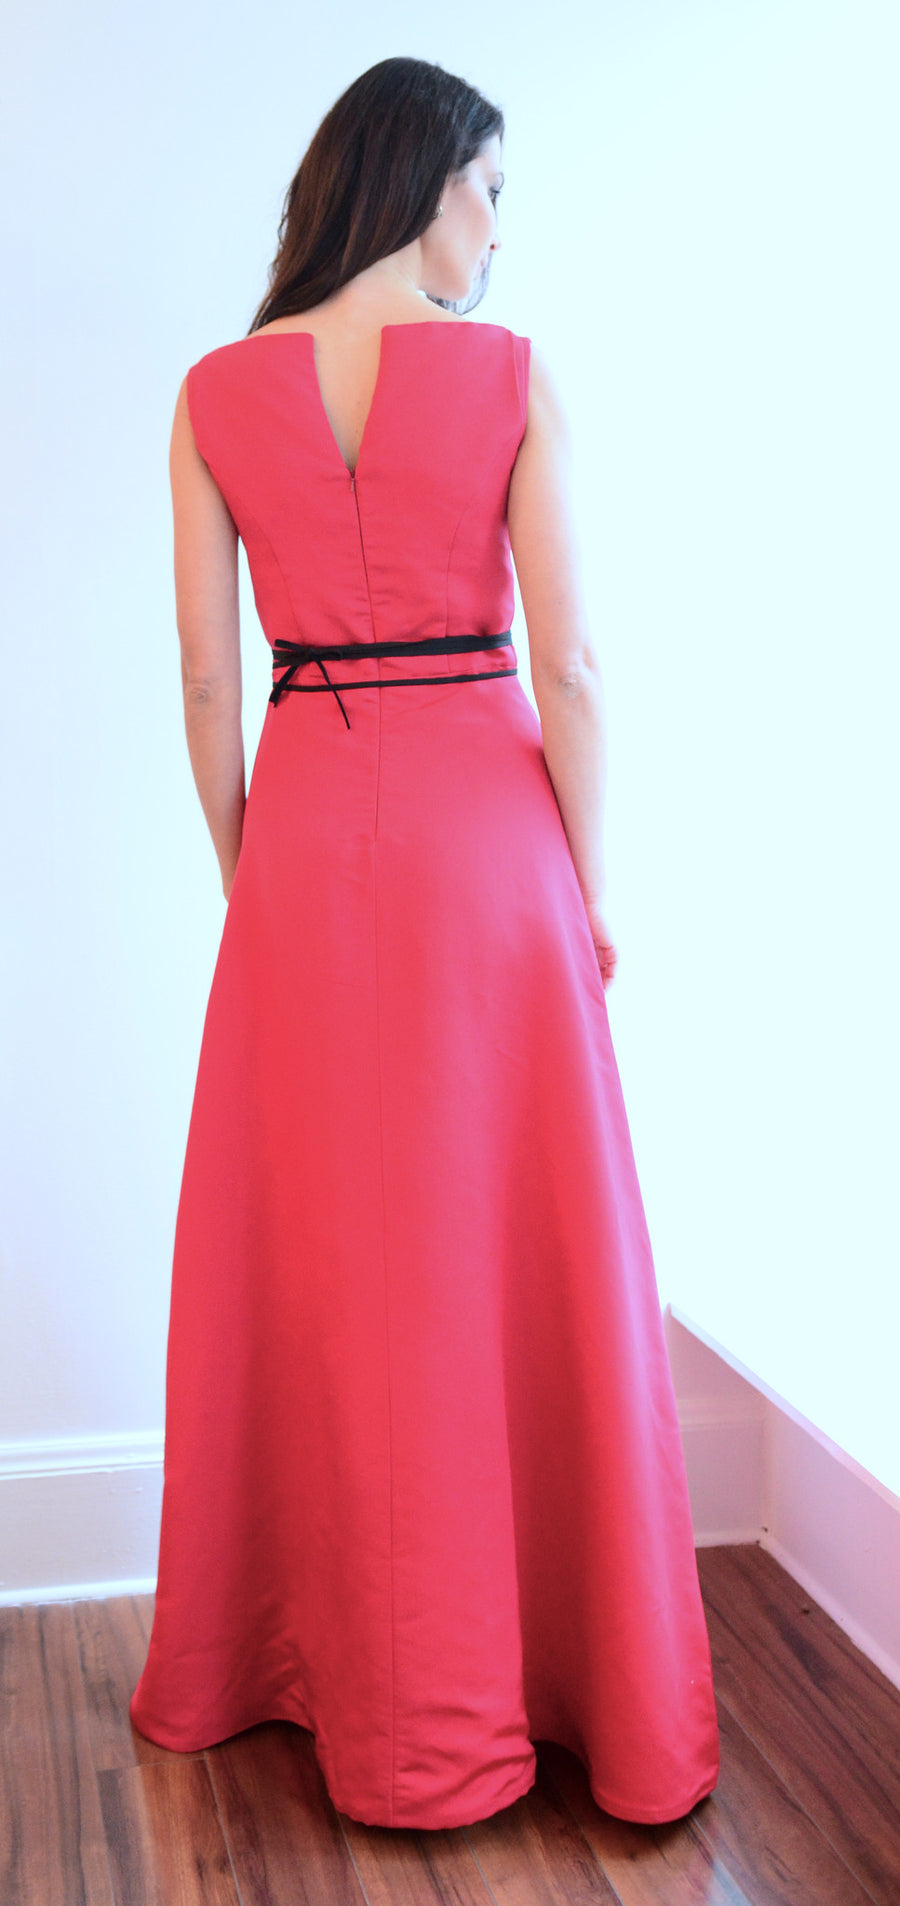 Classic Red Evening Gown